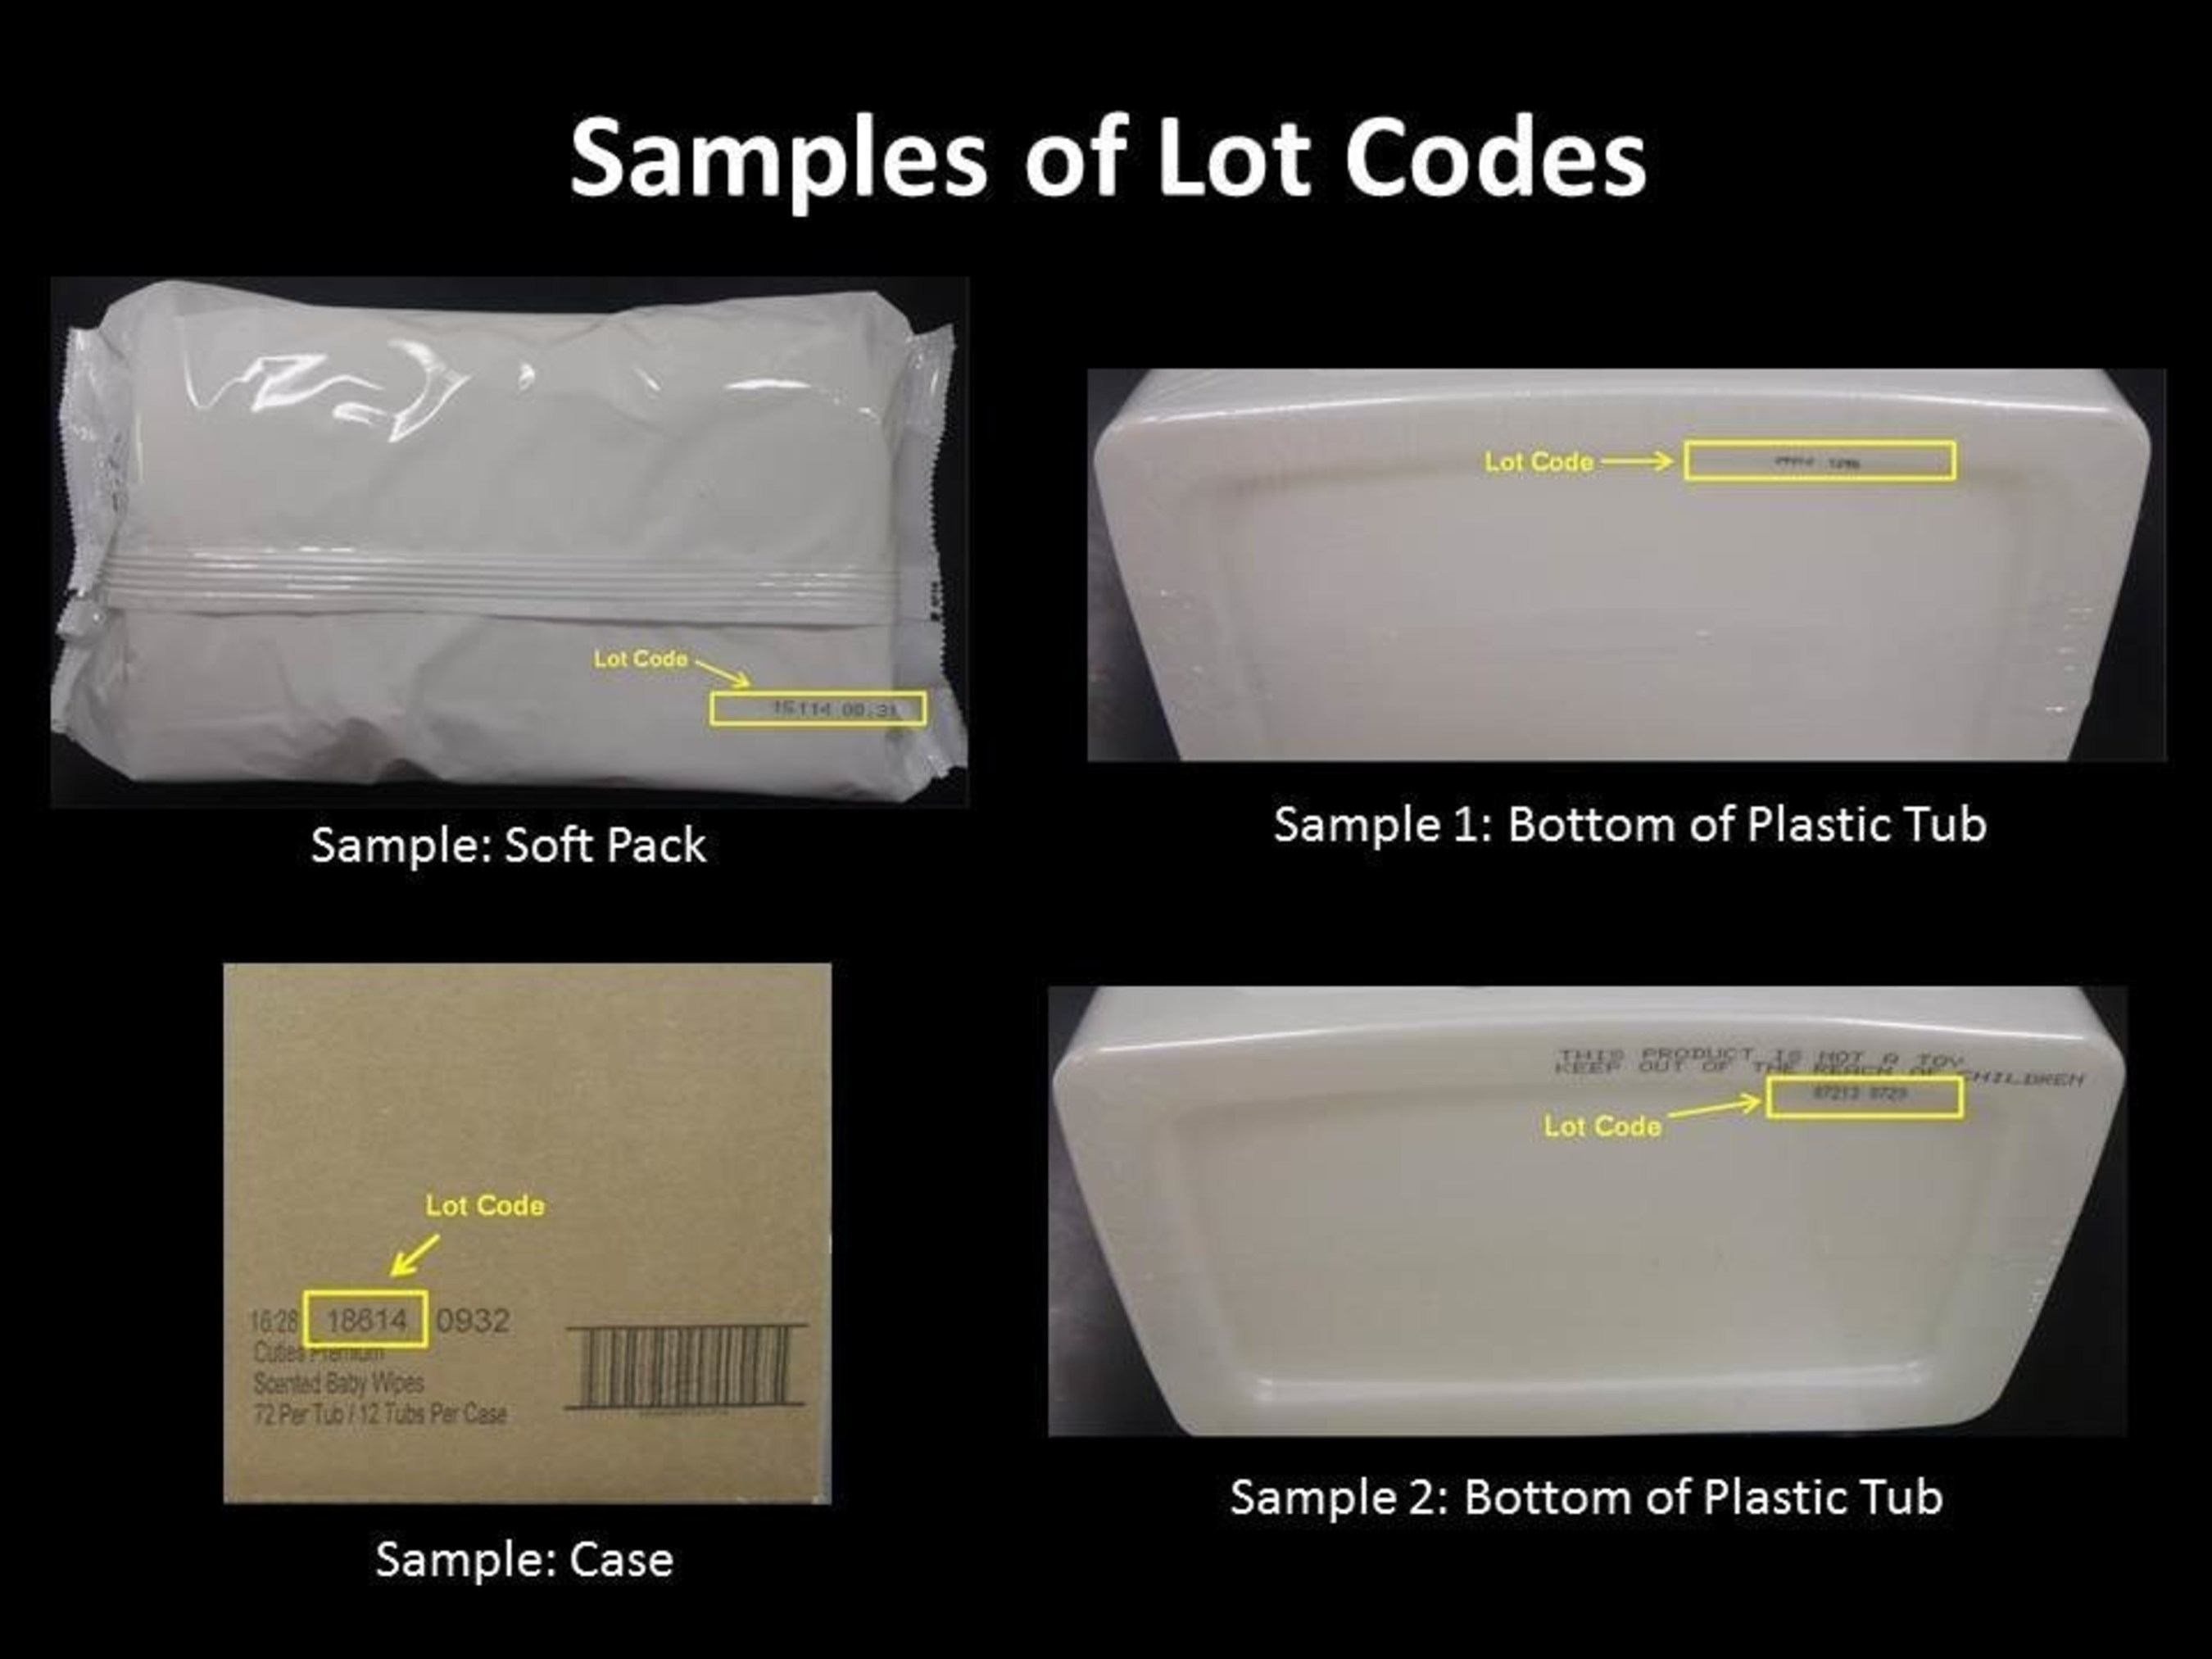 Samples of Lot Codes